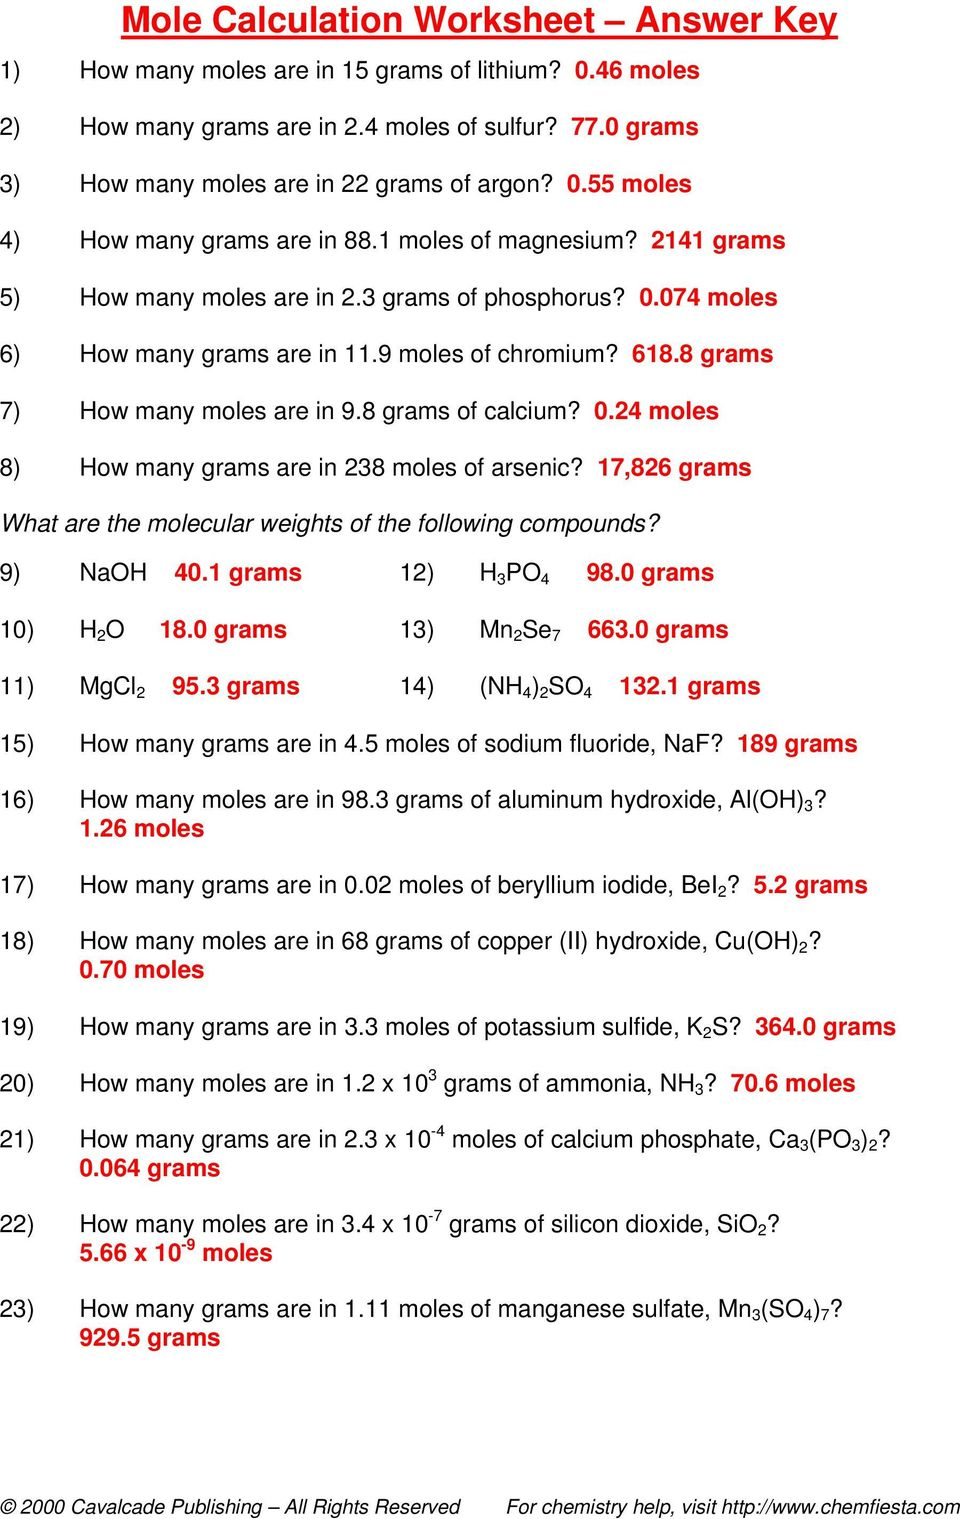 Moles Molecules And Grams Worksheet on Moles Molecules And Grams Worksheet